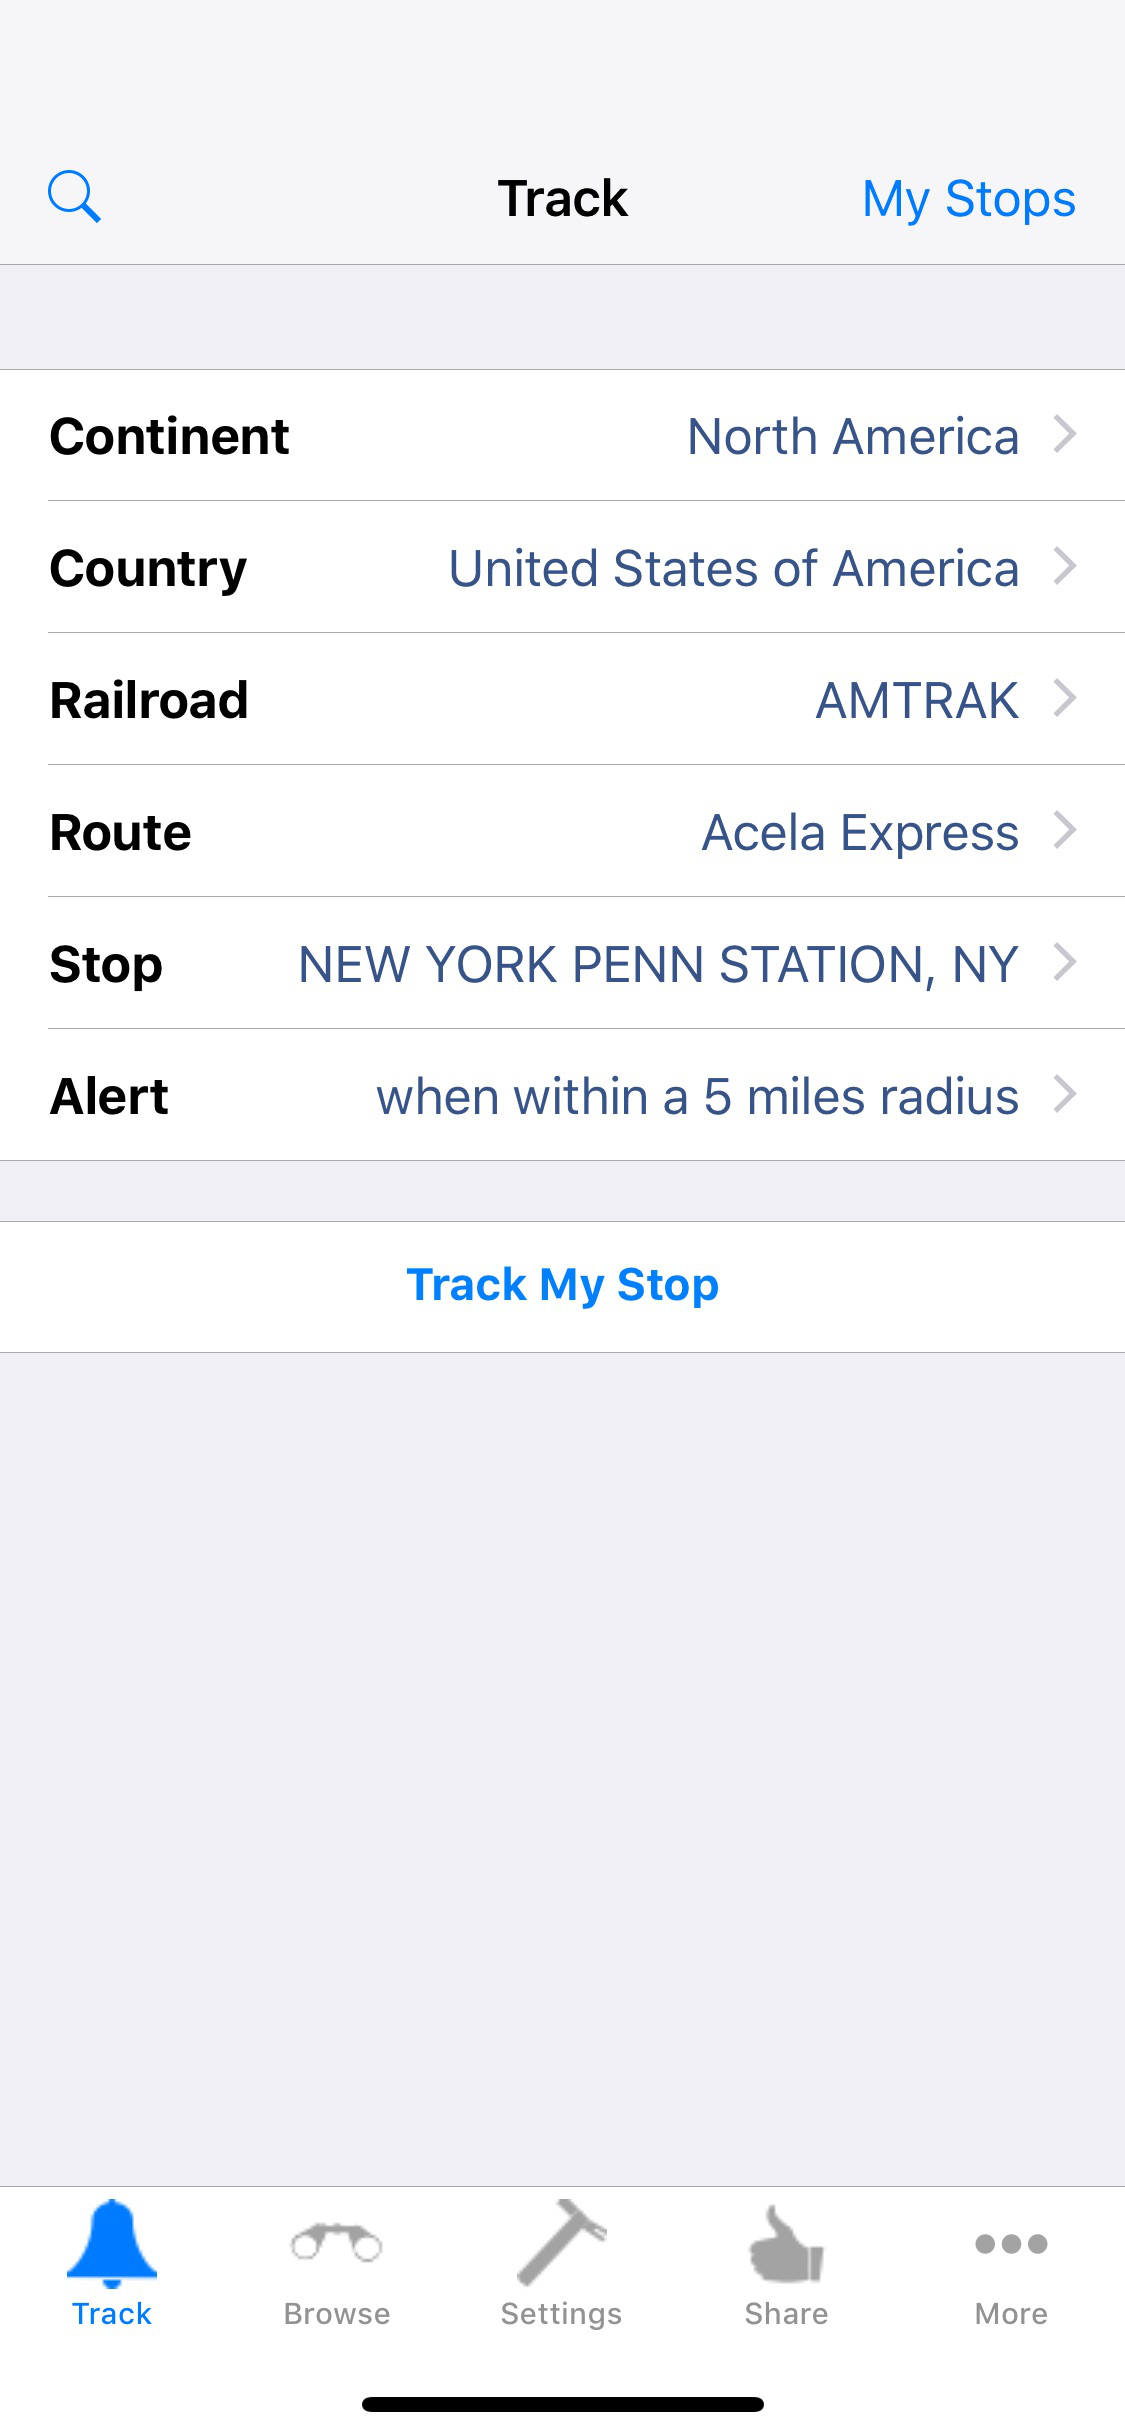 The Track option in TrackMyStop